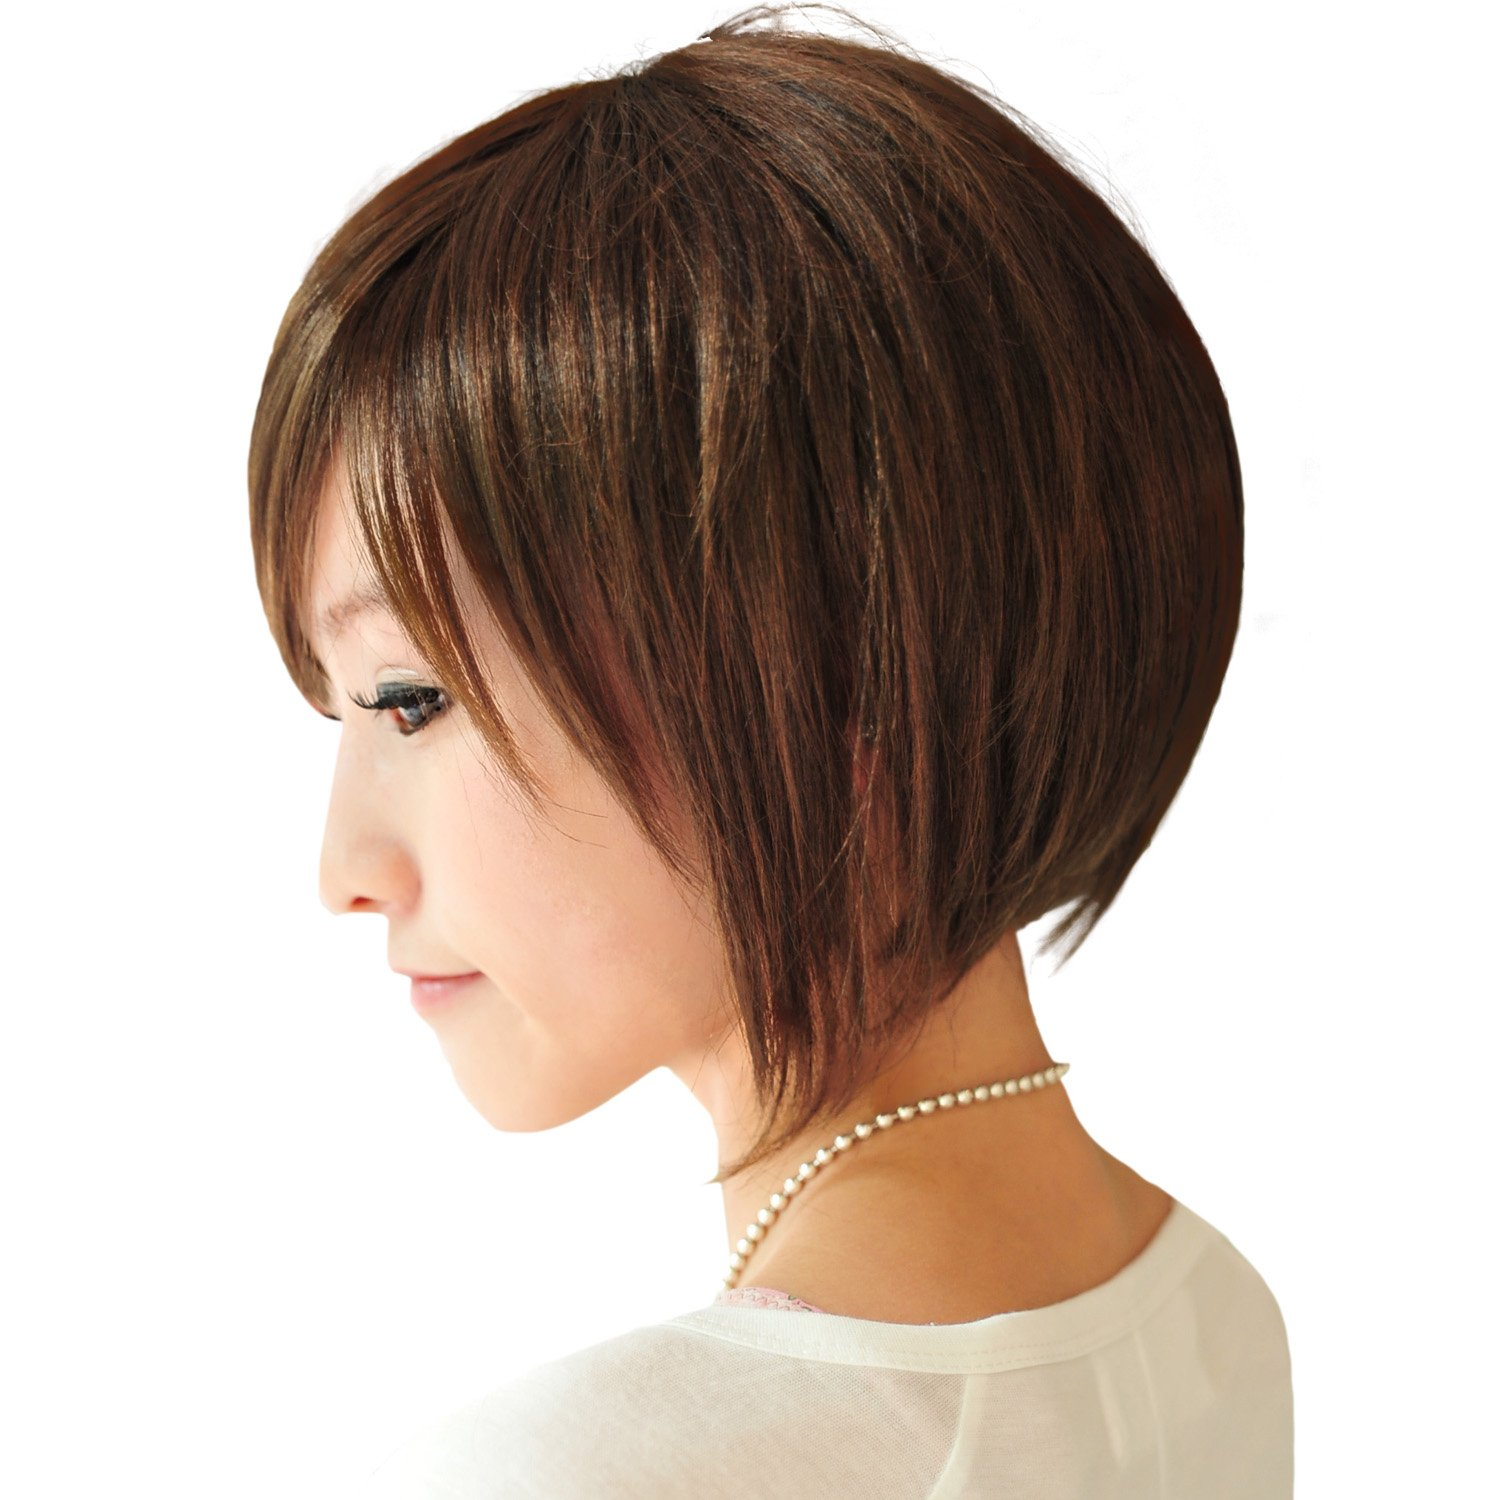 Short Angled Bob Haircut